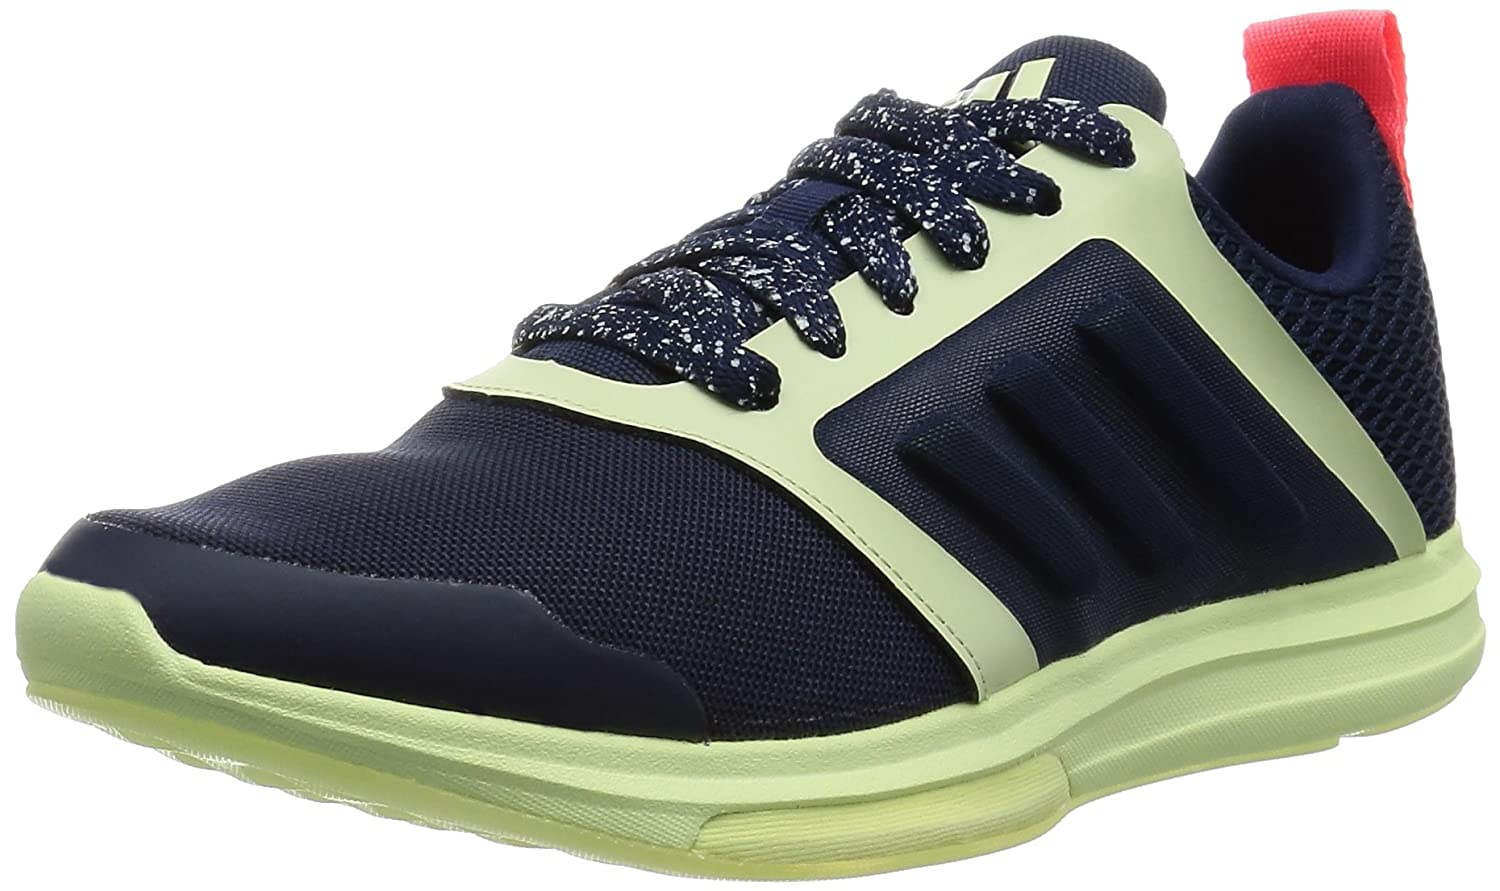 2b3770913 adidas Women's Yvori 'Stellasport' AQ1999 Trainers, Navy/Green, Size UK  8.5: Amazon.co.uk: Sports & Outdoors